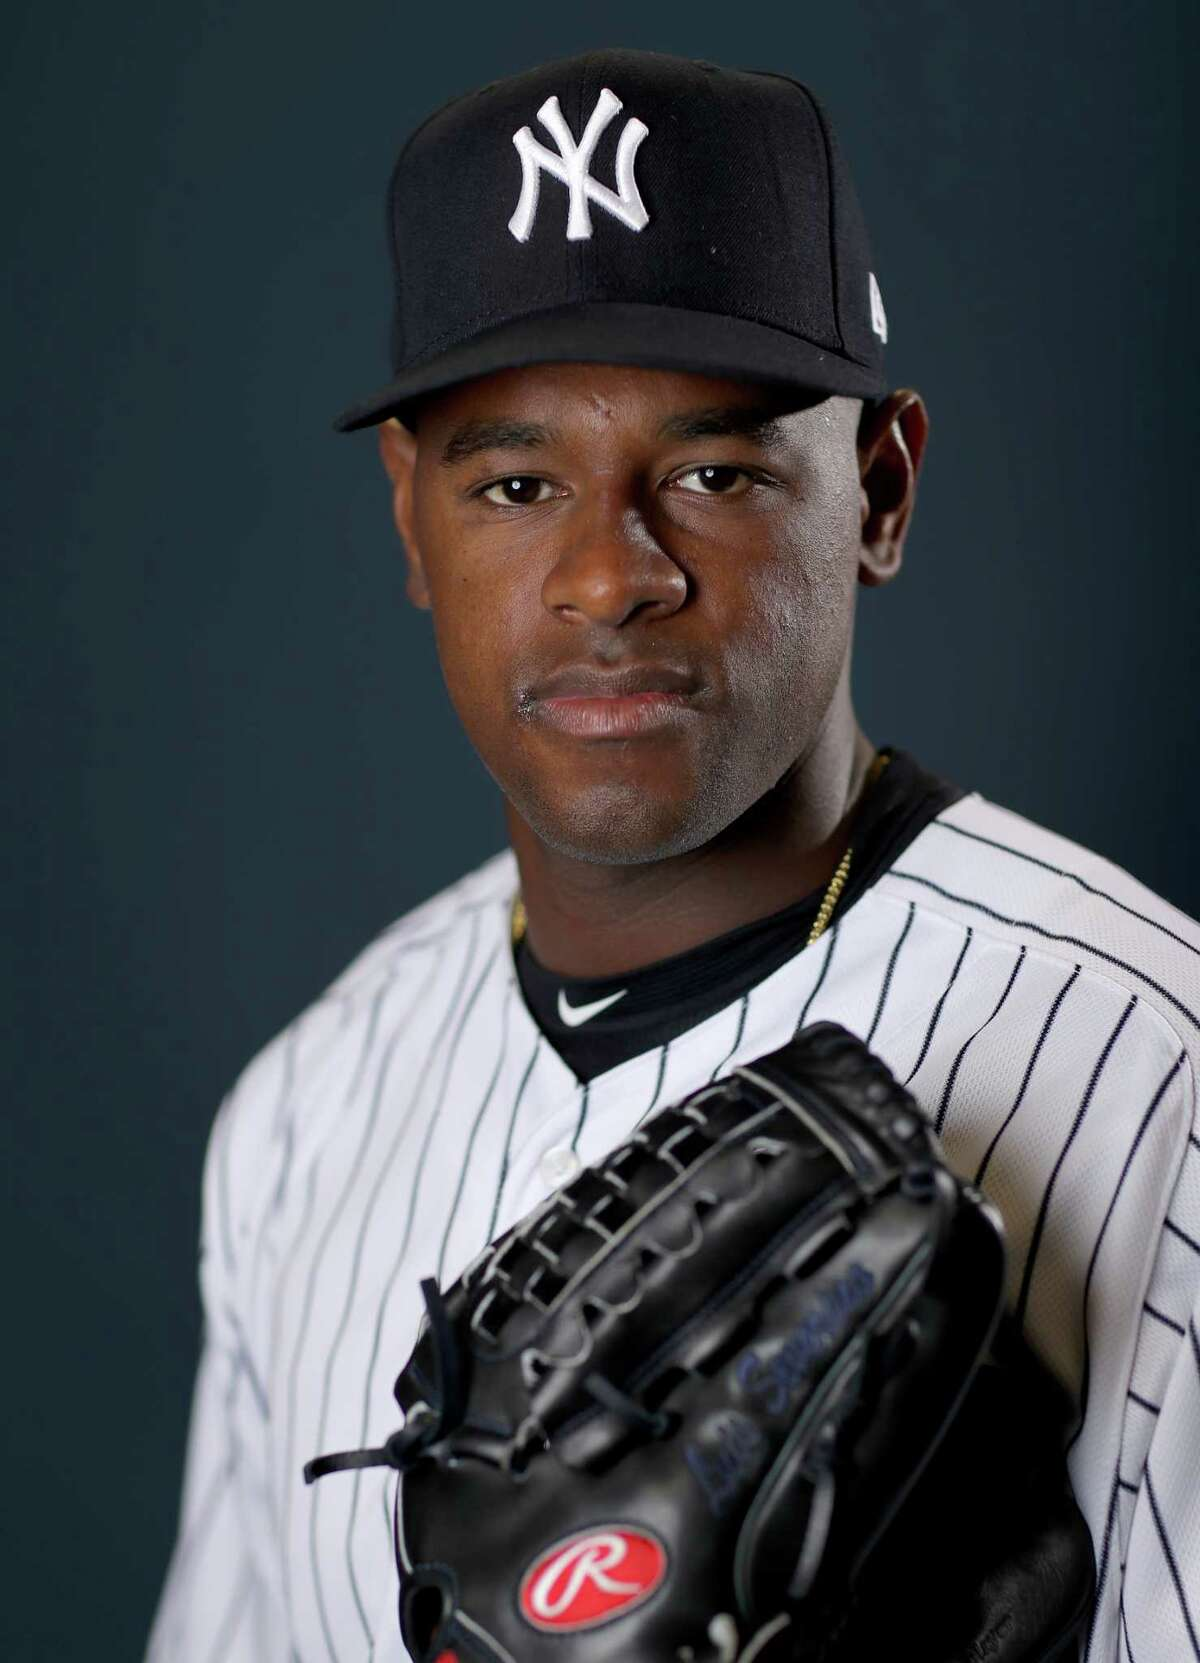 TAMPA, FLORIDA - FEBRUARY 21: Luis Severino #40 of the New York Yankees poses for a portrait during the New York Yankees Photo Day on February 21, 2019 at George M. Steinbrenner Field in Tampa, Florida. (Photo by Elsa/Getty Images)